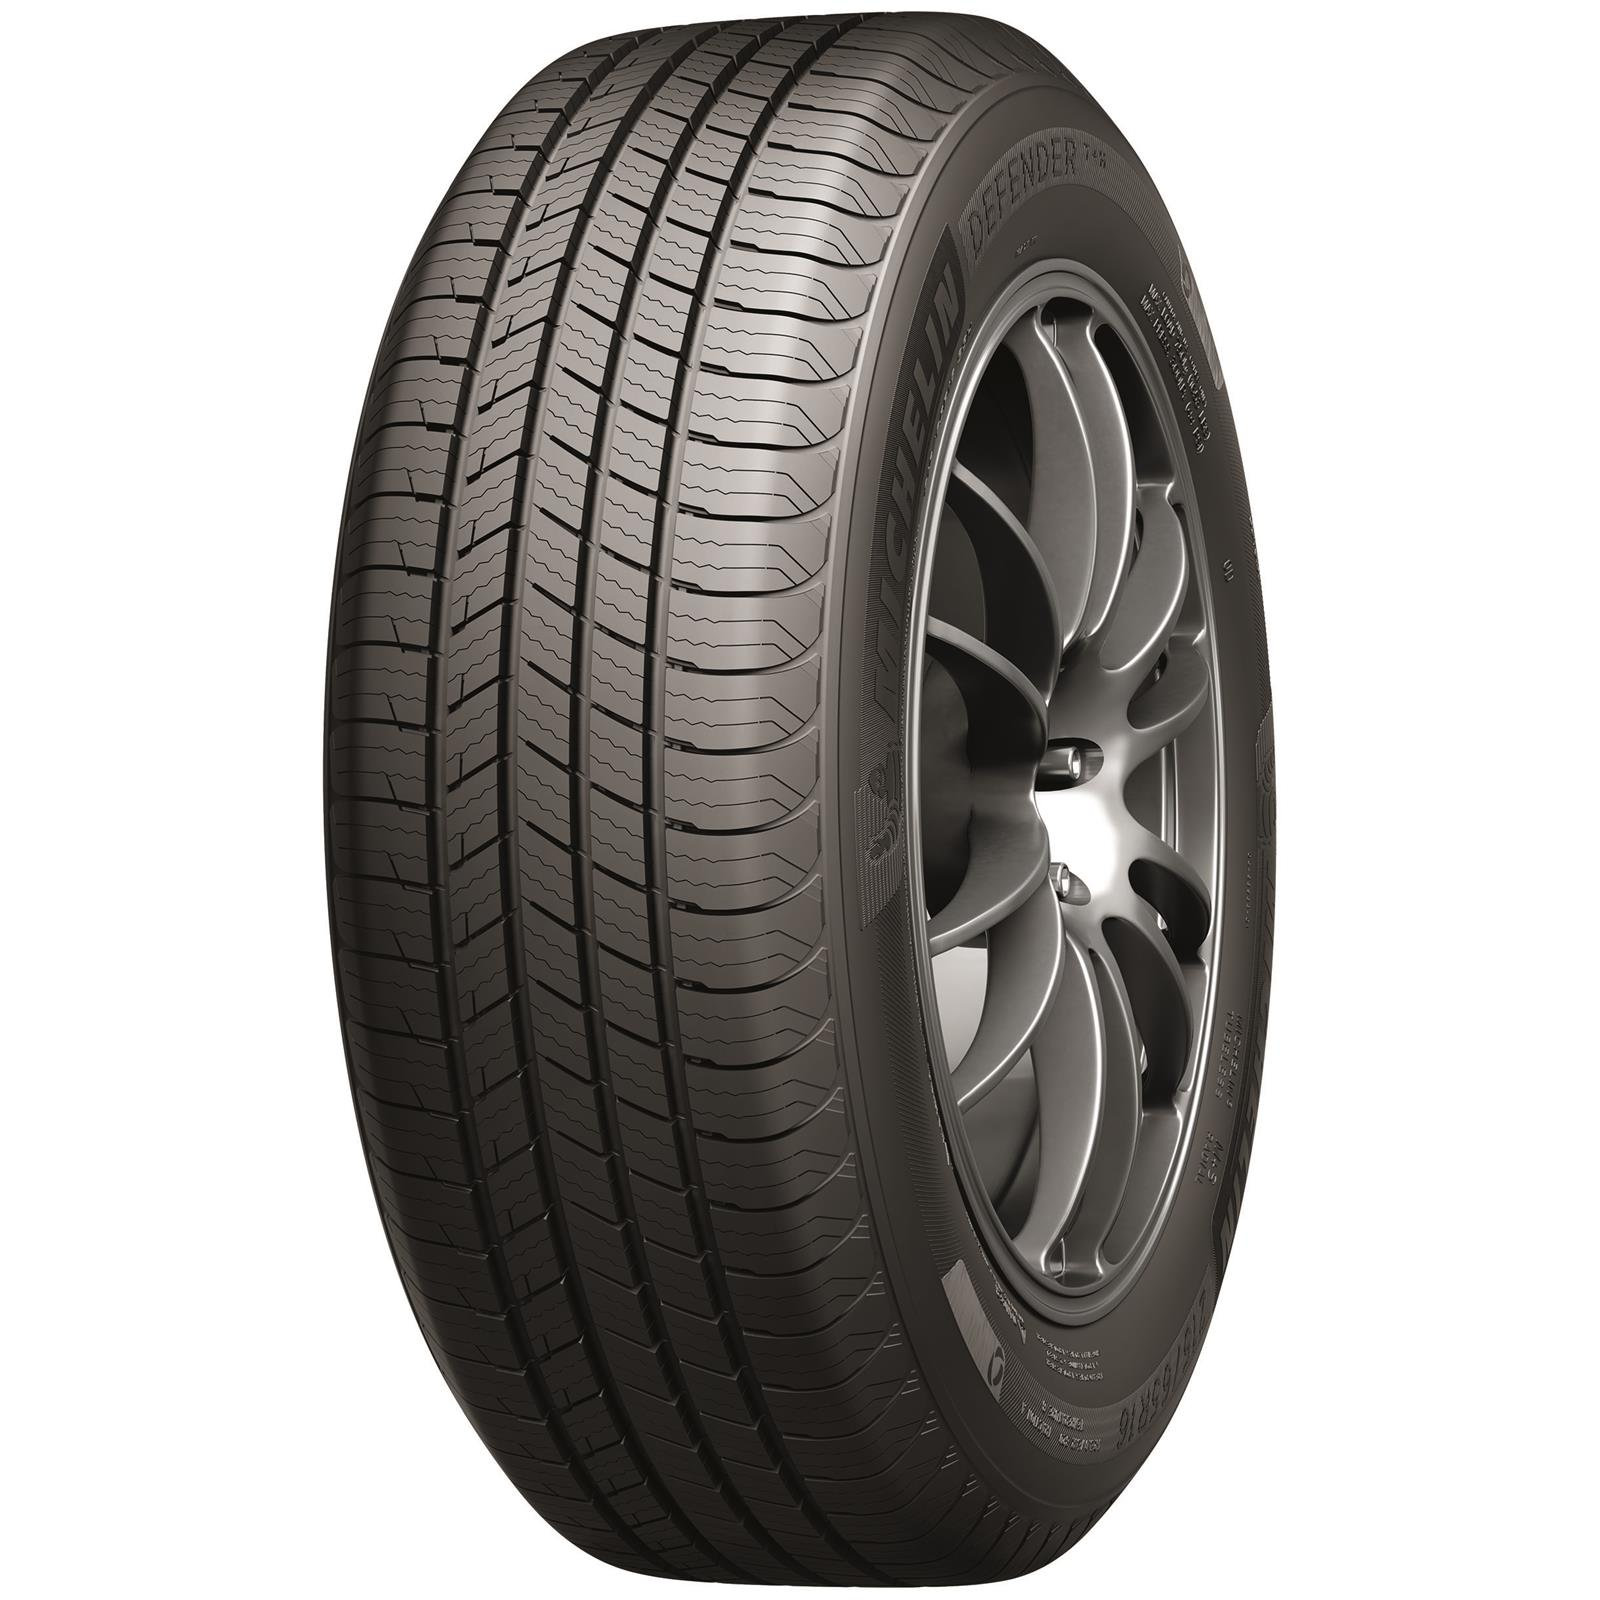 Michelin Defender T H Tires Free Shipping on Orders Over $99